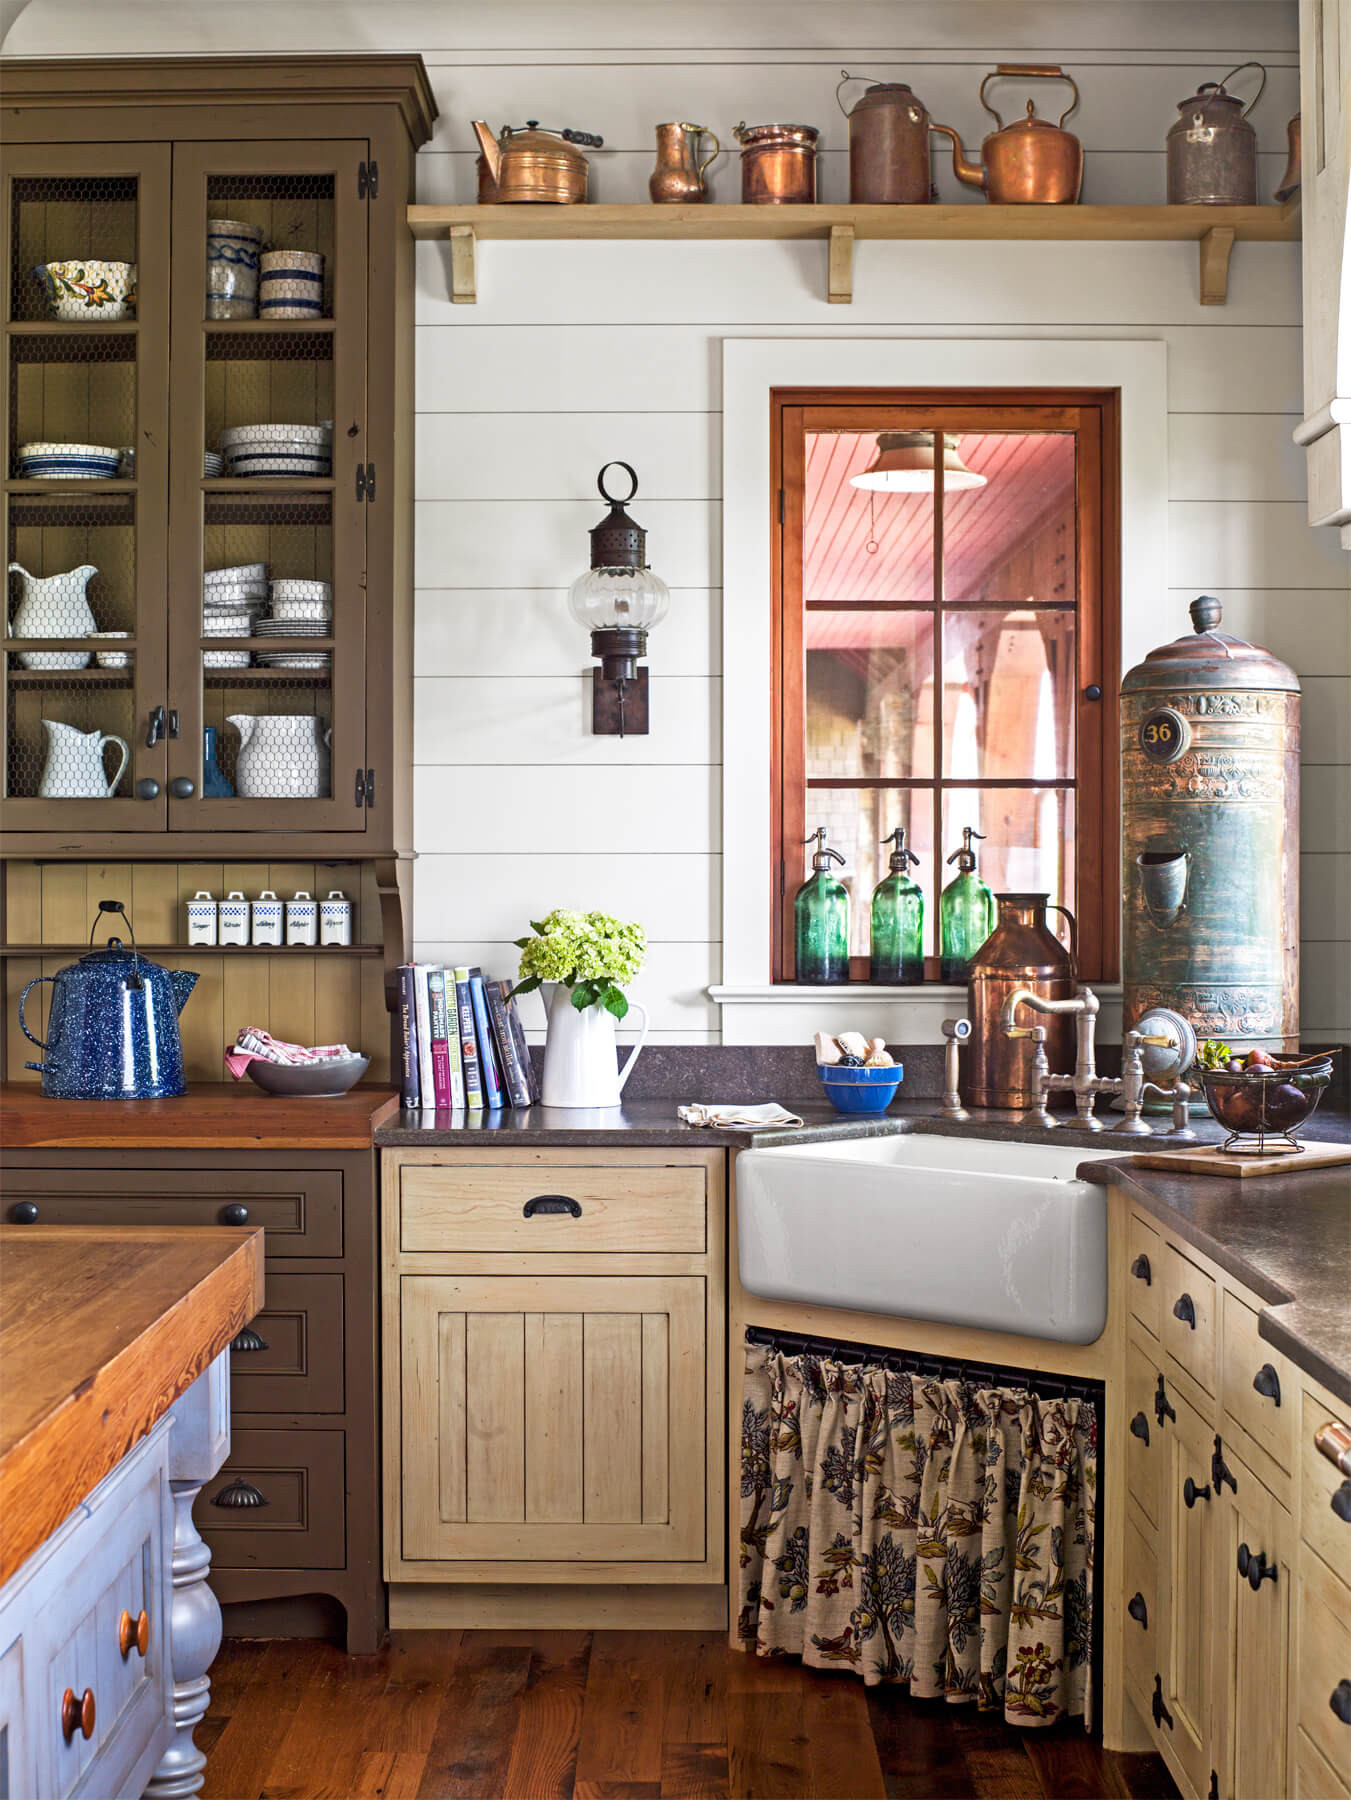 Best ideas about Antique Kitchen Decor . Save or Pin 34 Best Vintage Kitchen Decor Ideas and Designs for 2019 Now.